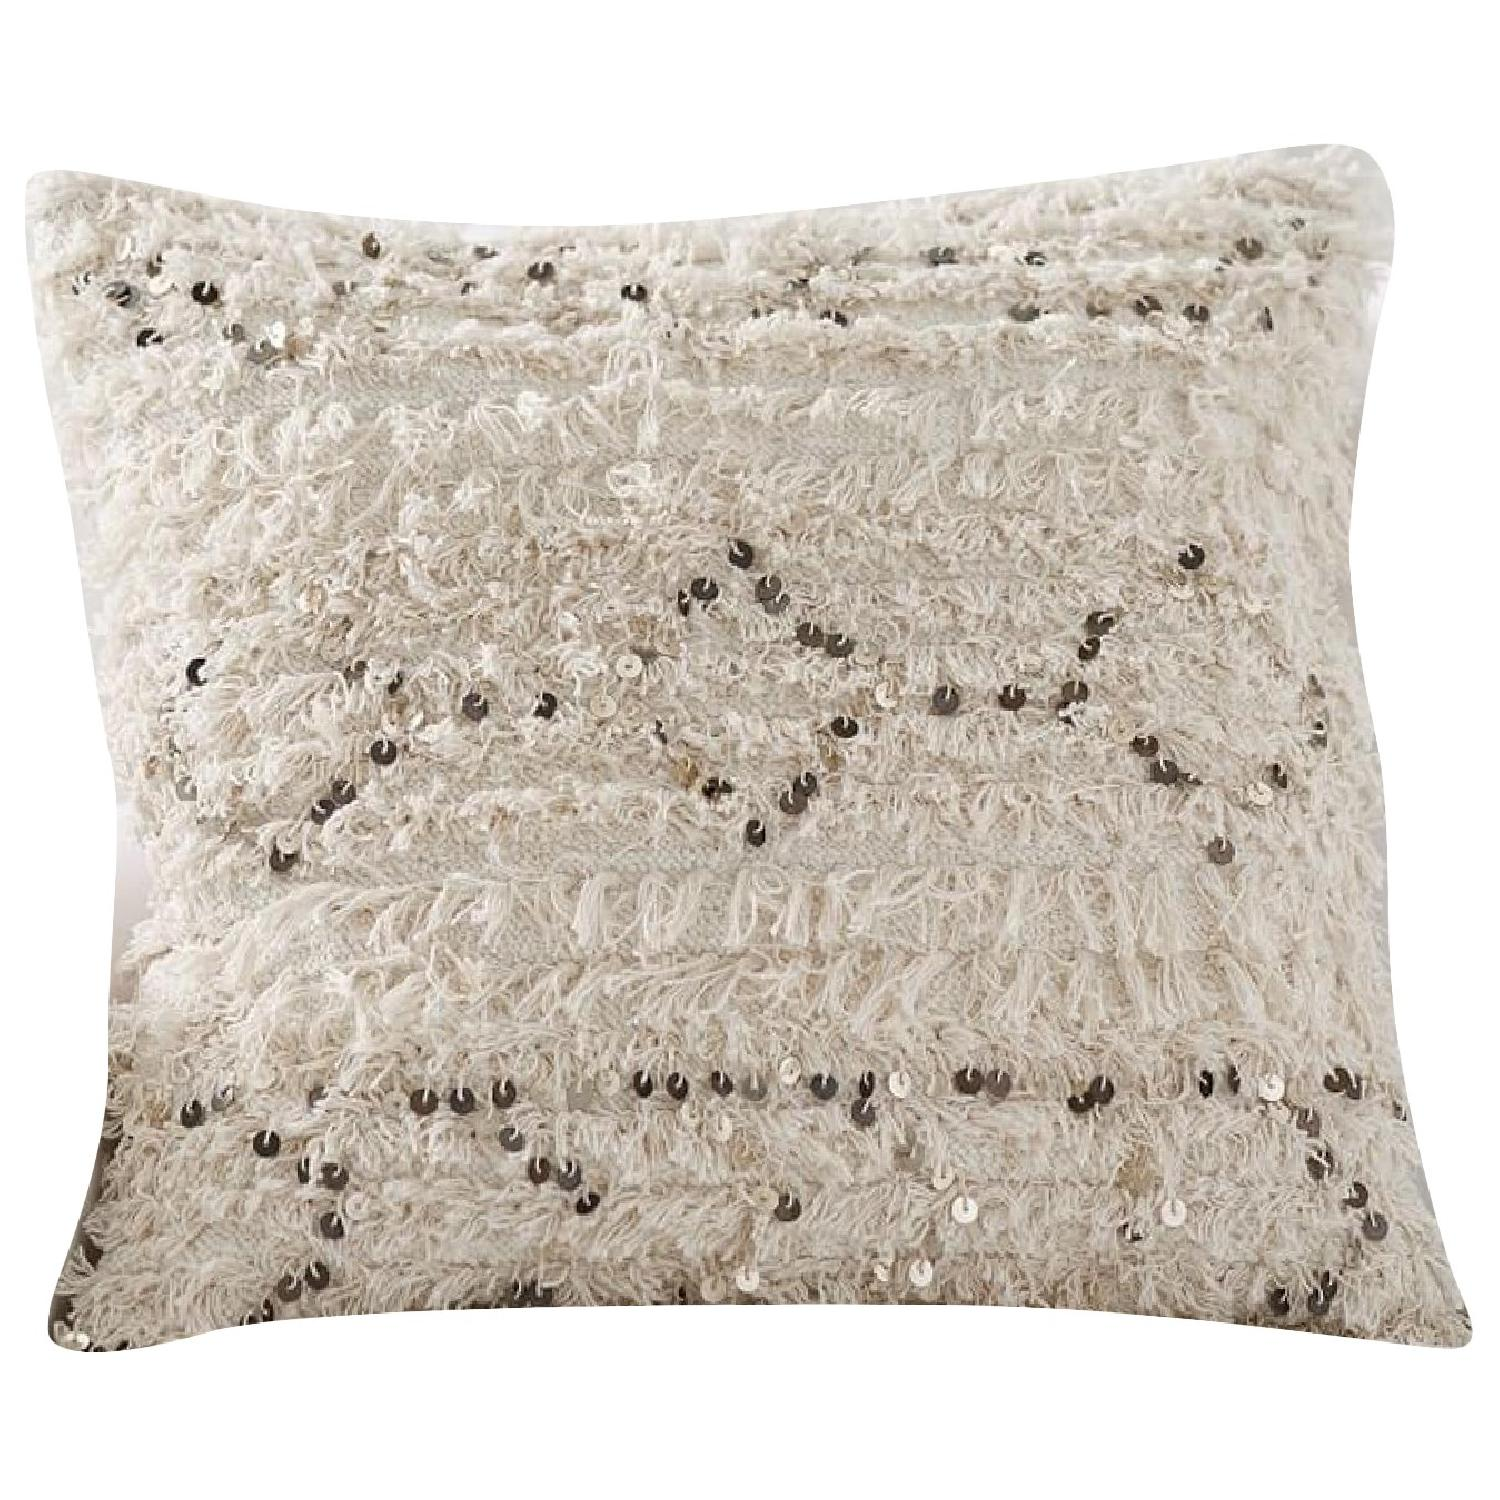 Pottery Barn Moroccan Wedding Pillow Covers w/ Sham Inserts - image-0